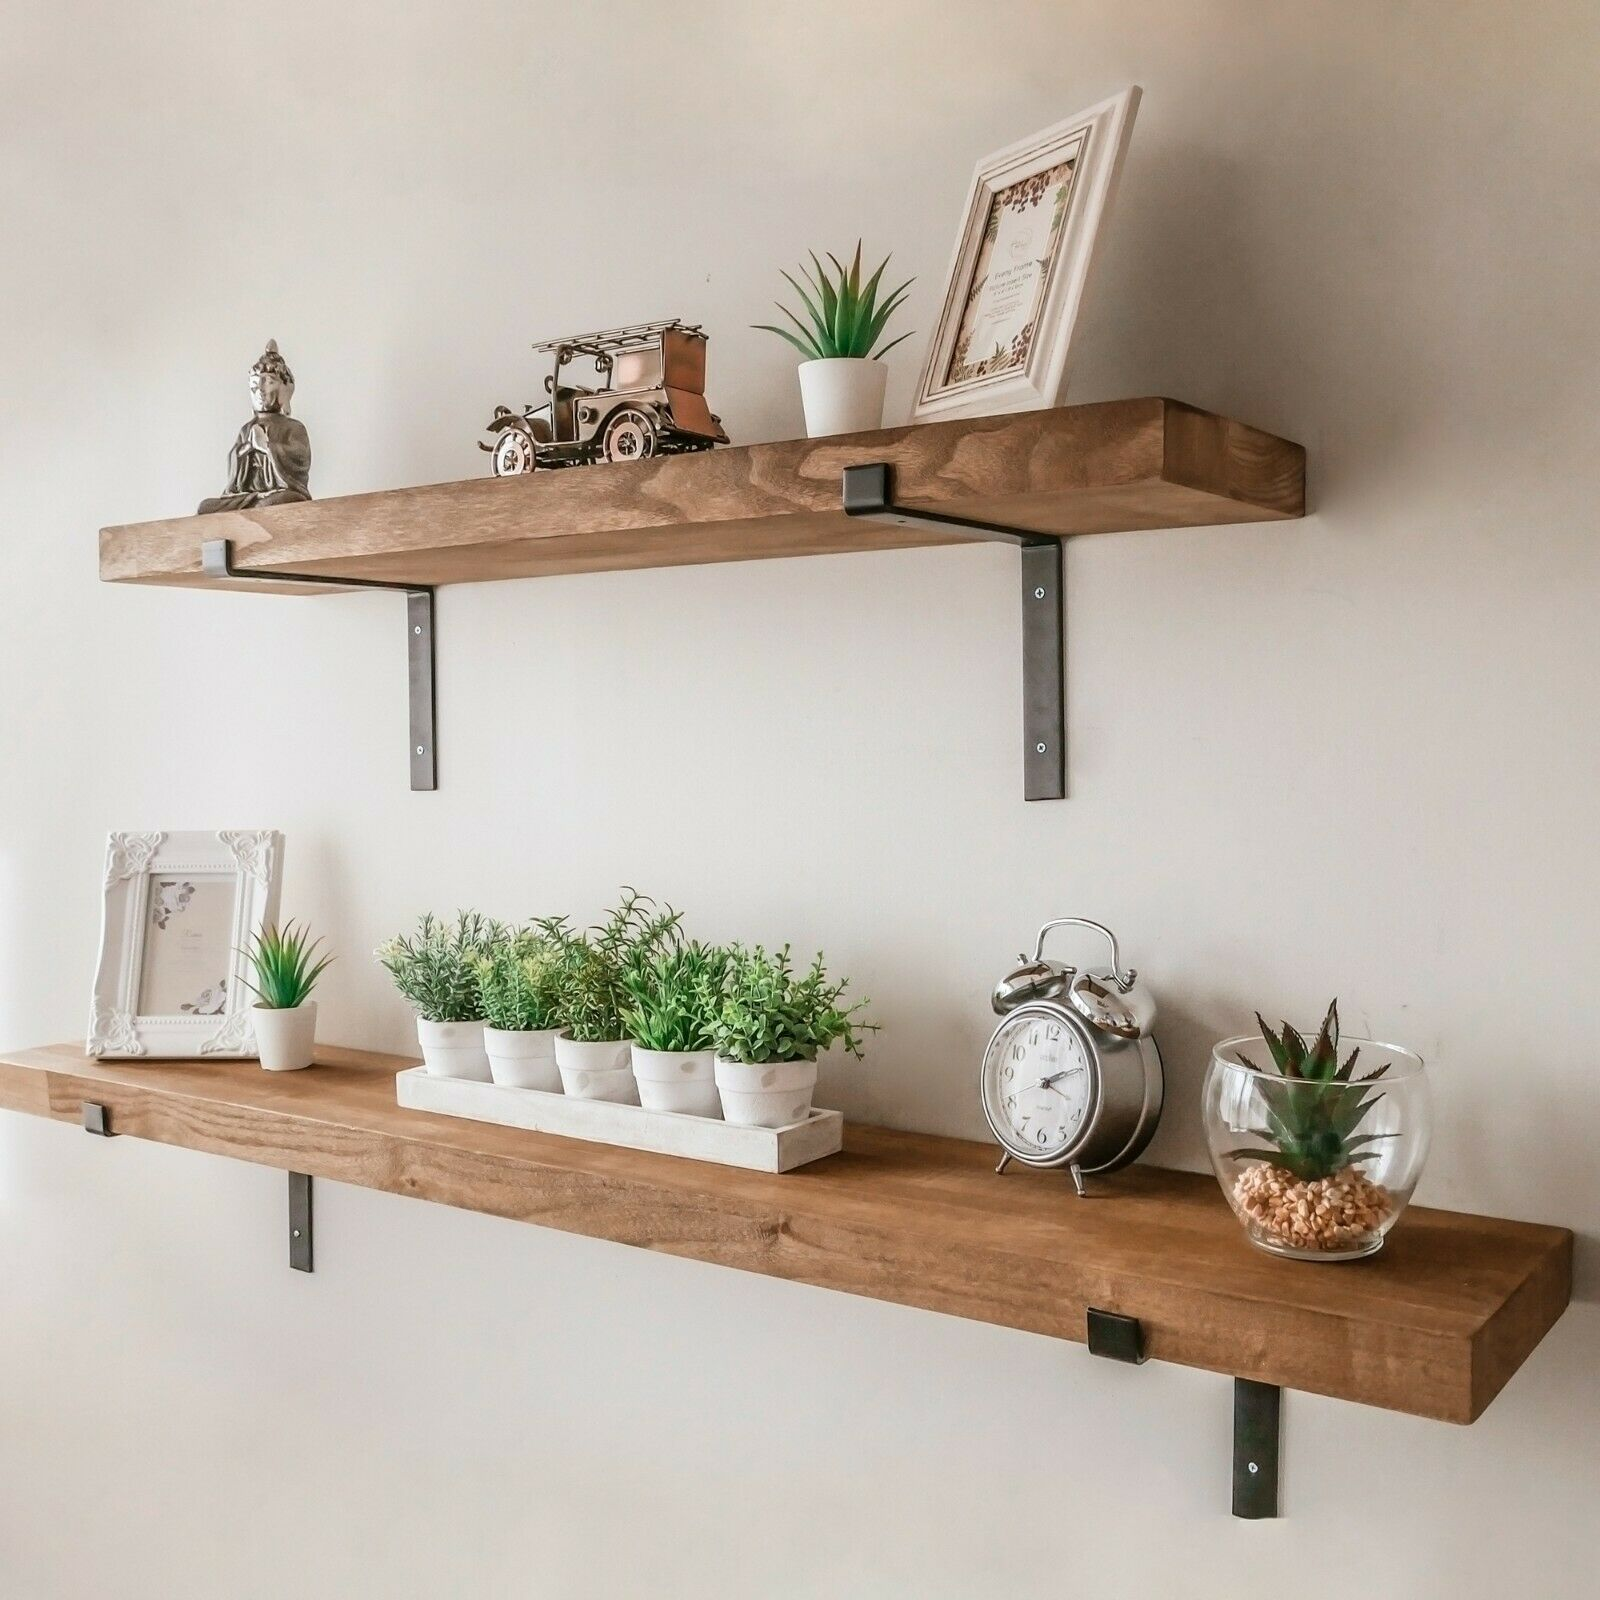 Rustic Wooden Wall Shelf Large Industrial Wood Metal Floating